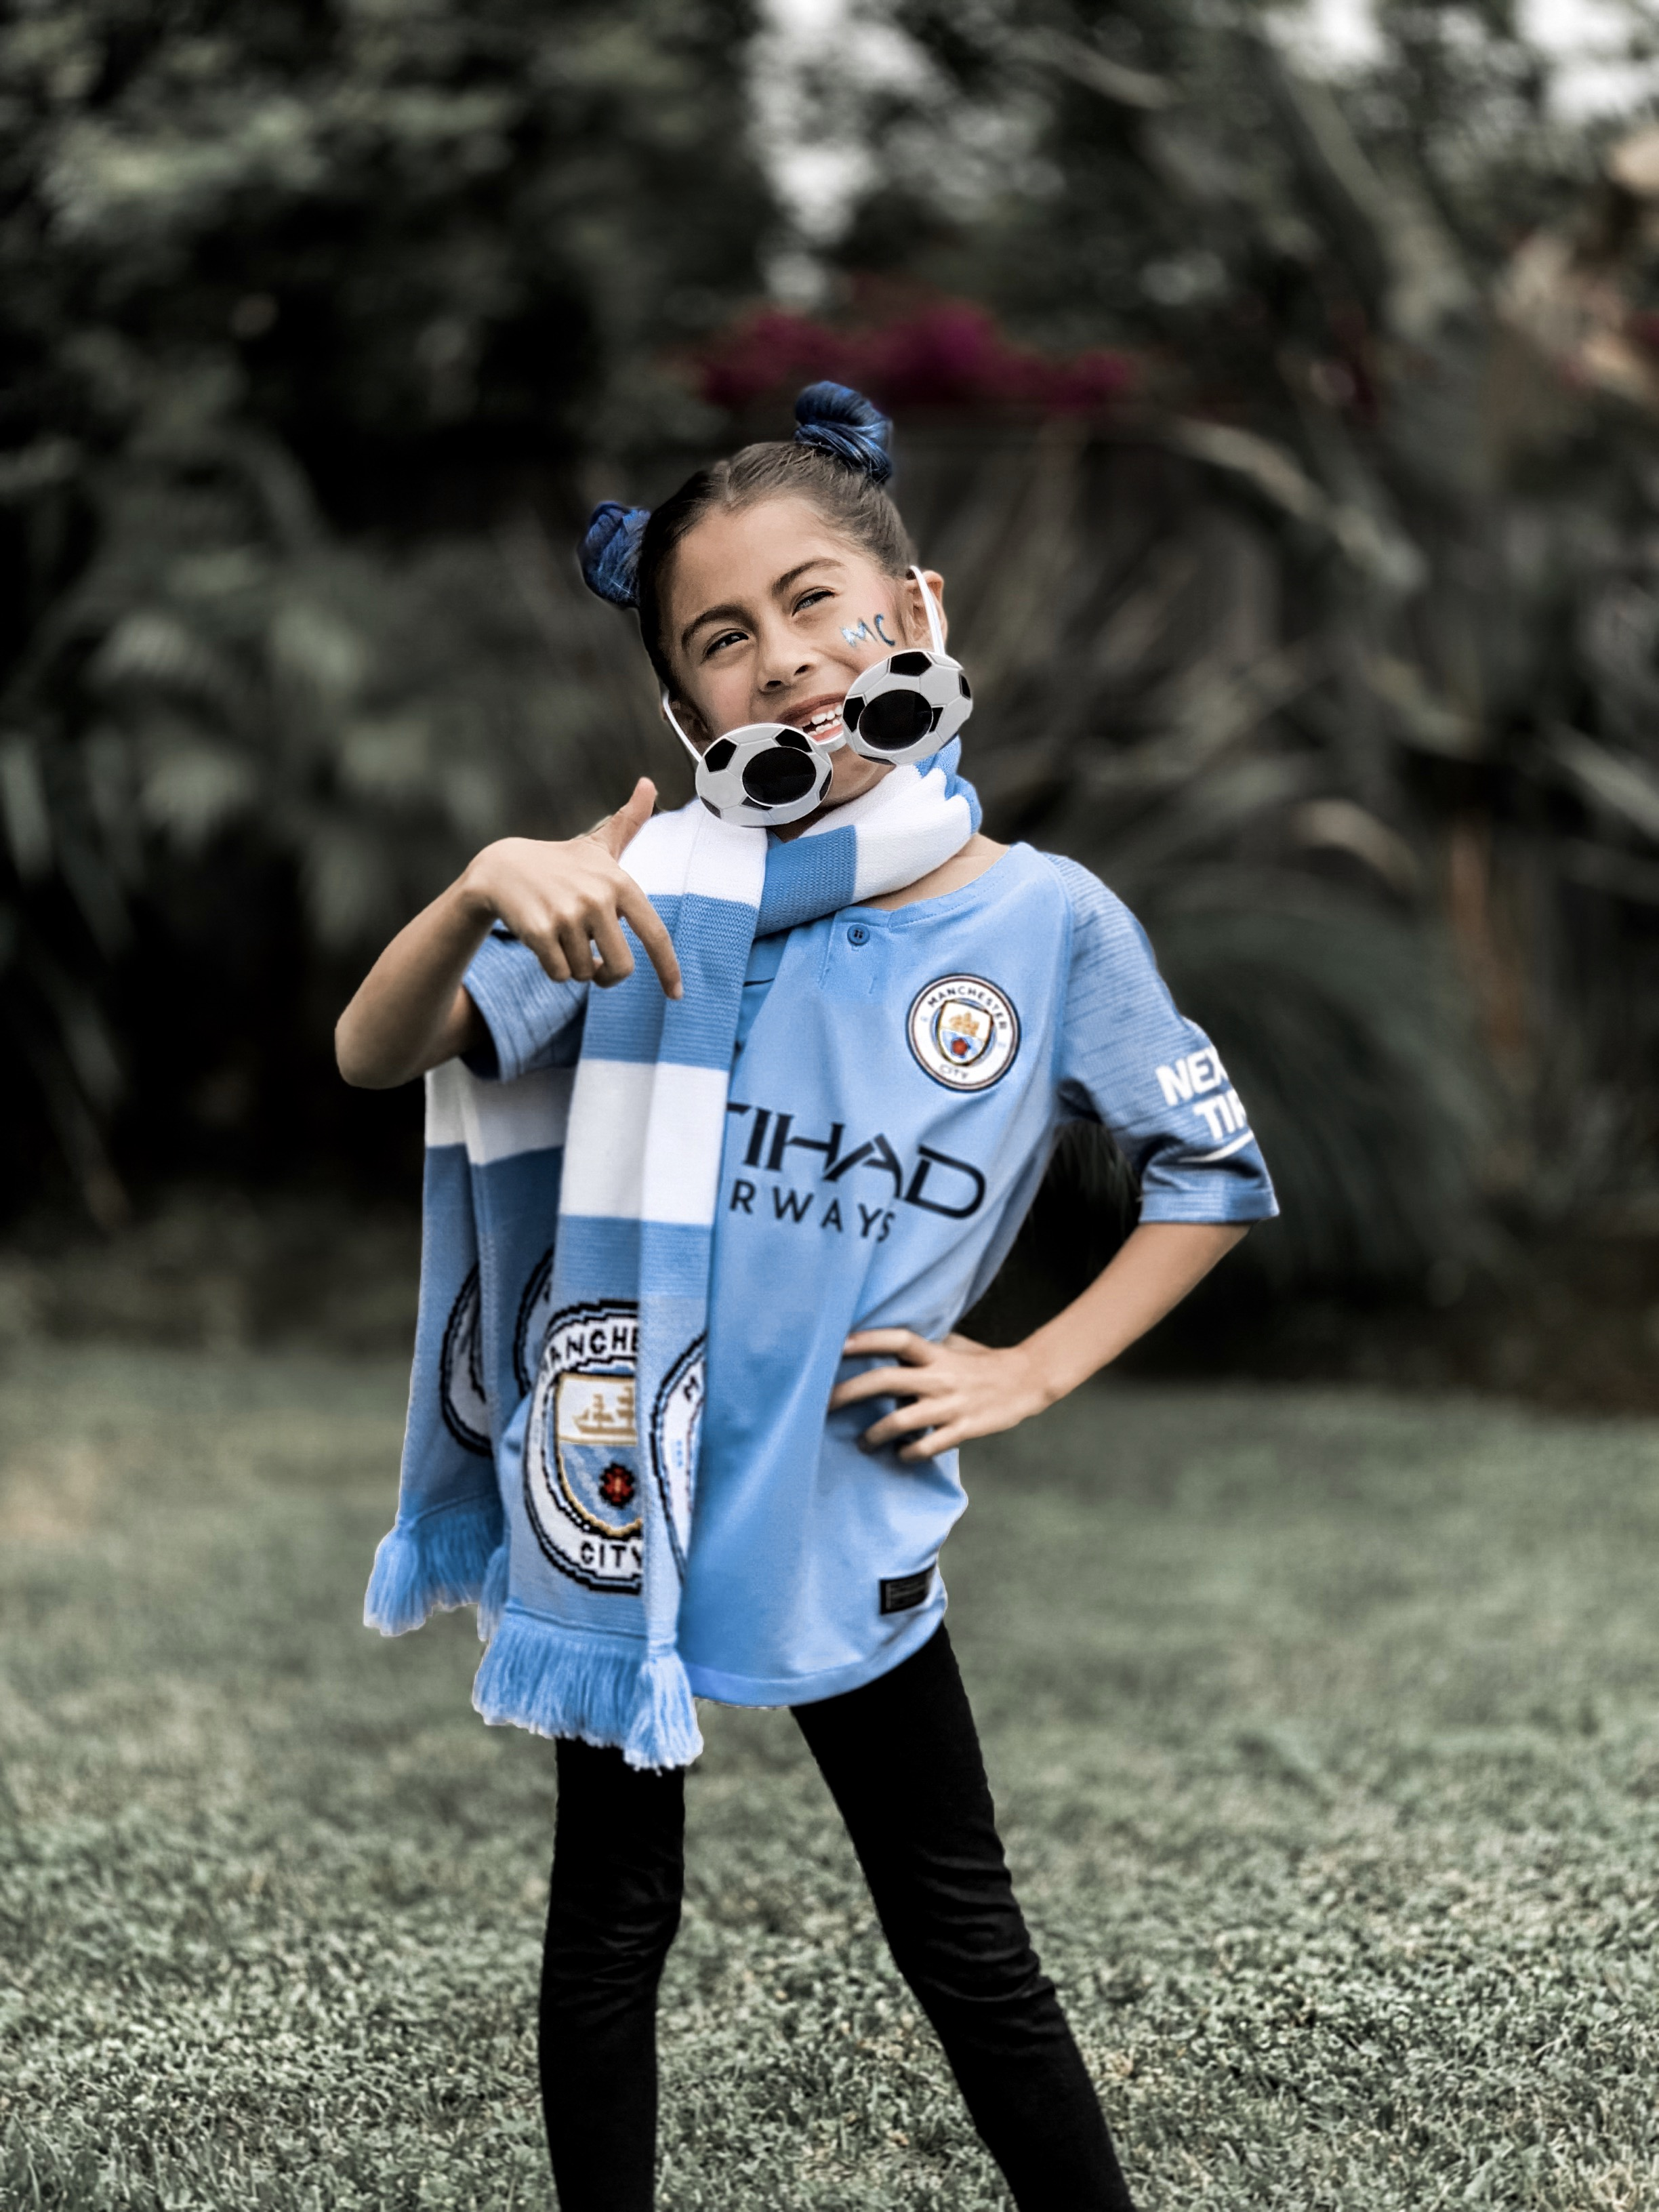 Manchester City Football Club is an English football club based in Manchester that competes in the Premier League, the top flight of English football. In 2019 the team value of Man City reached $2.688B.